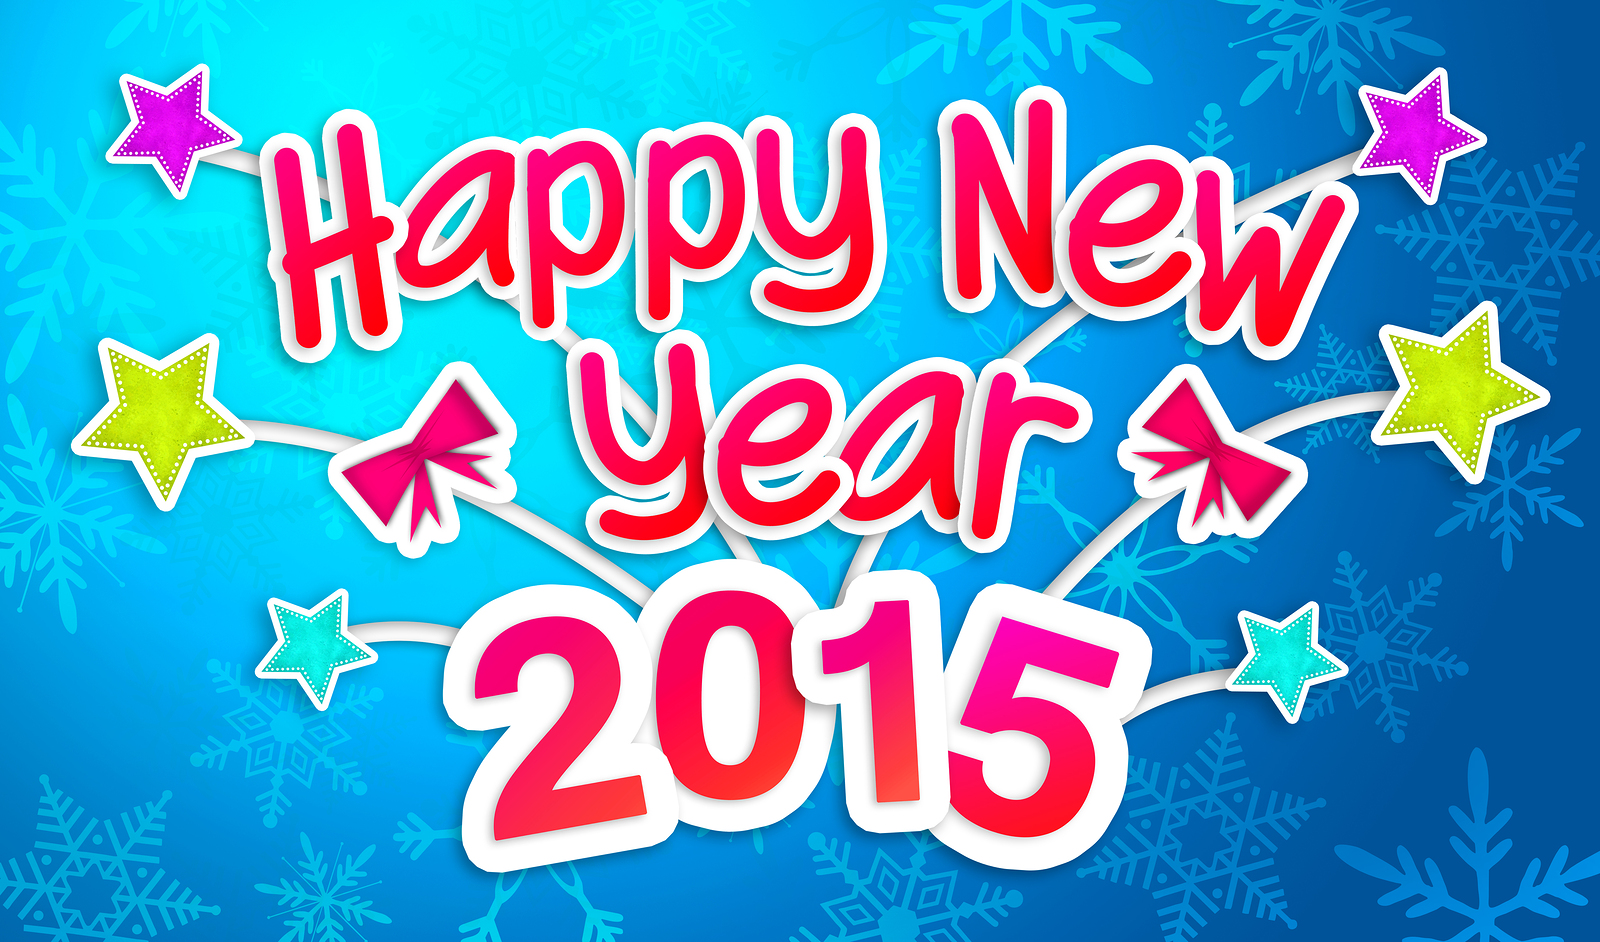 Happy New Year 2015 Event Wallpaper HD Wallpaper WallpaperLepi 1600x942